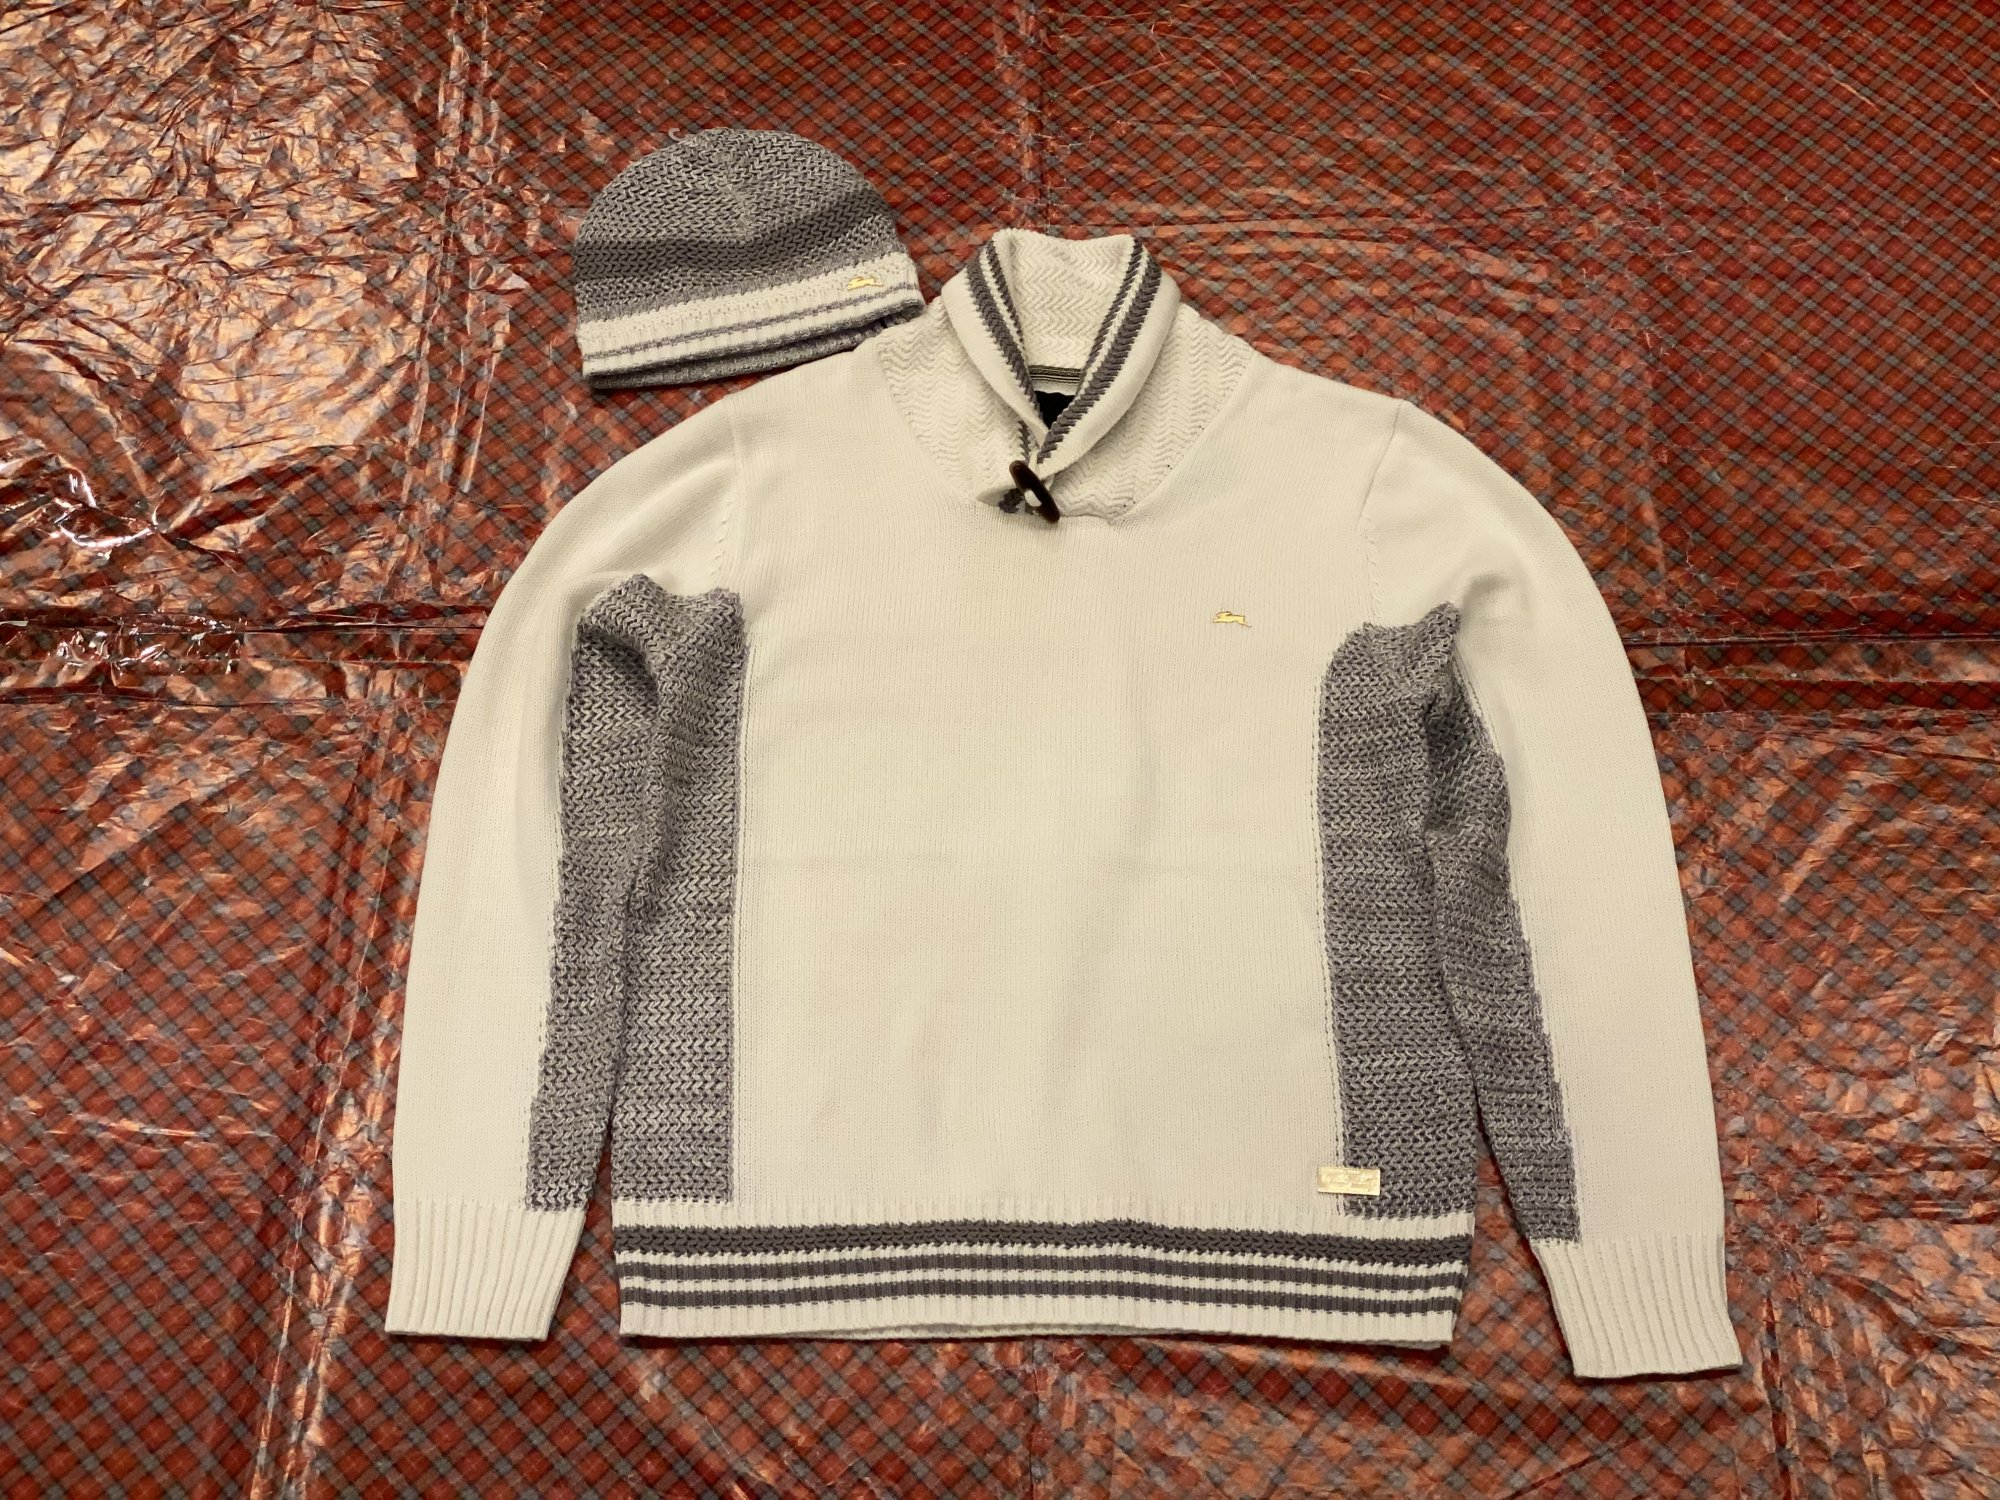 A TIZIANO PULL OVER SWEATER